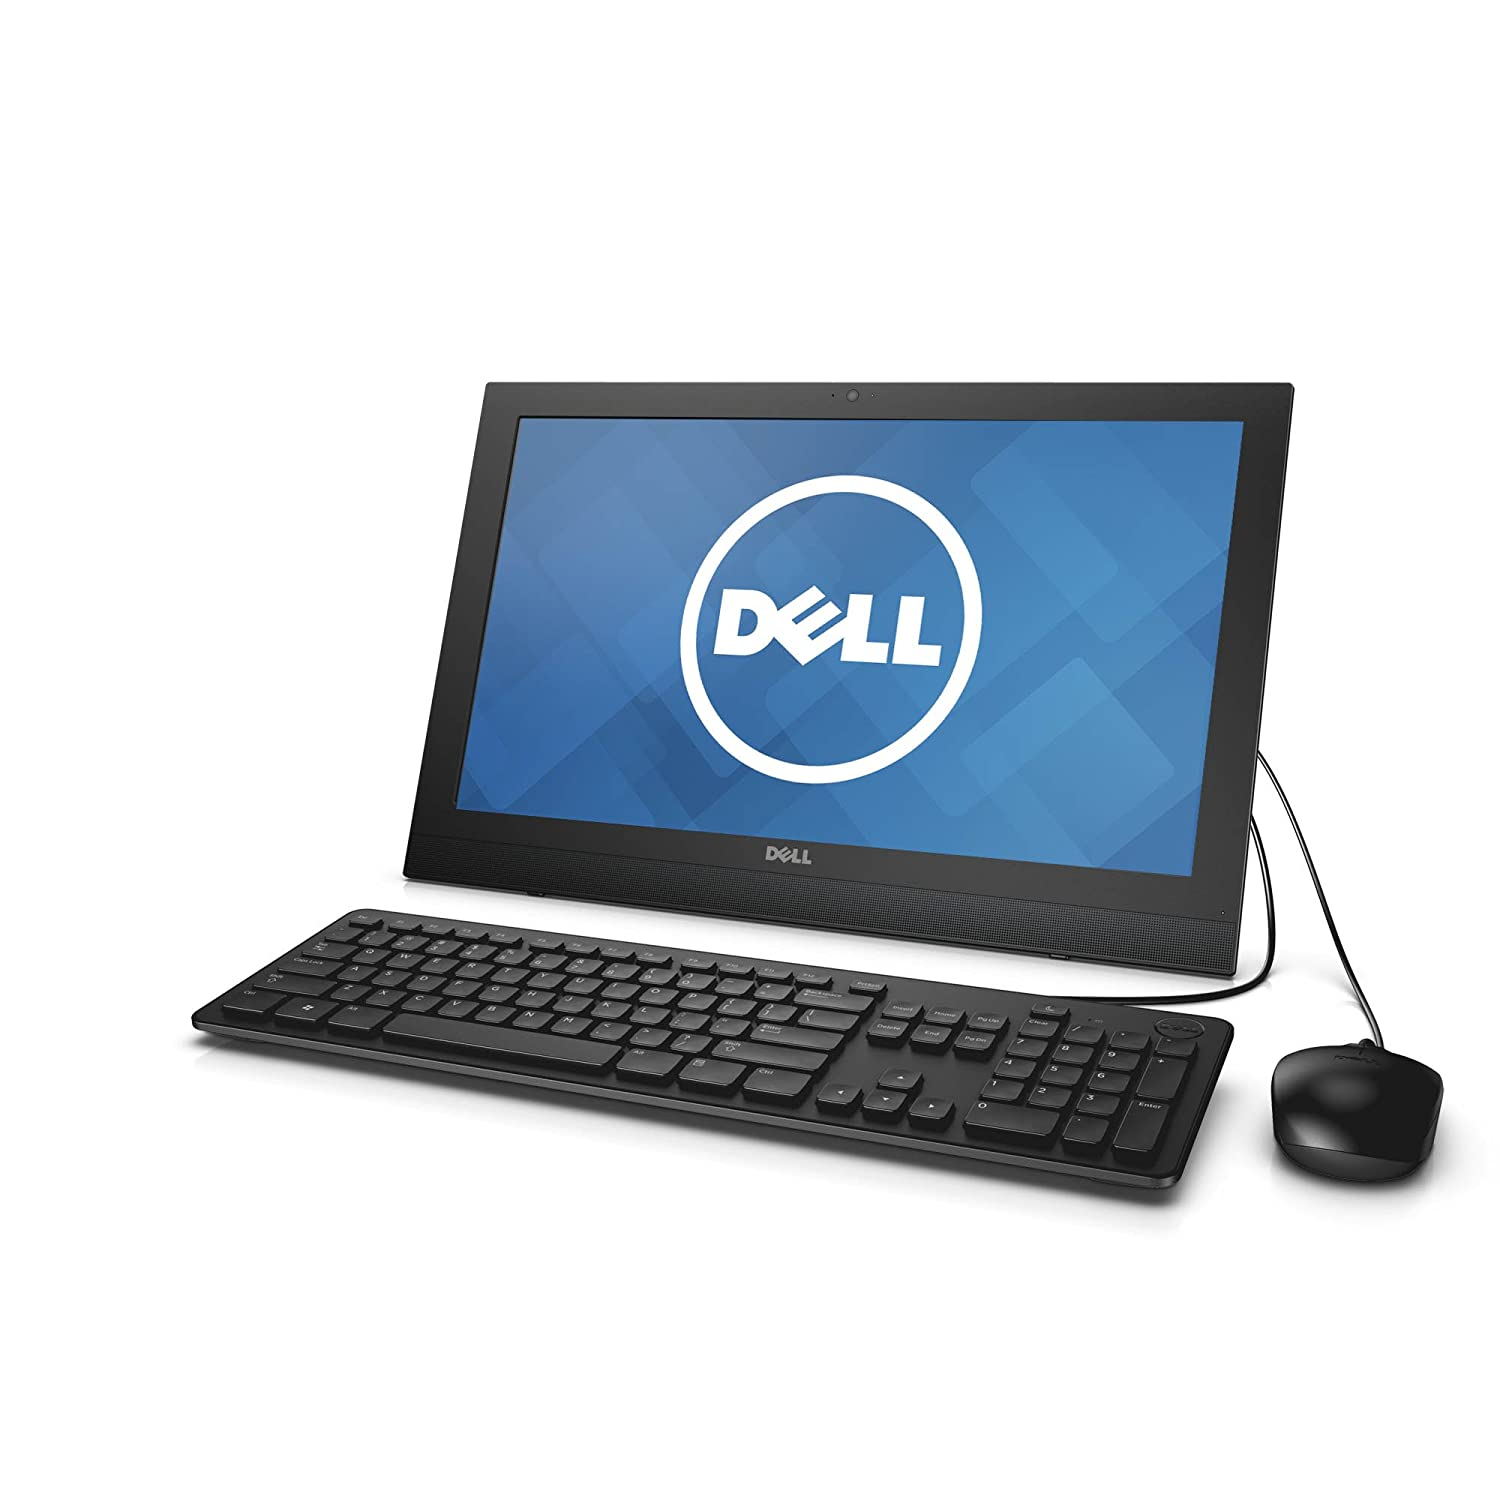 Dell Inspiron i3043-1250BLK 19.5-Inch All-in-One Desktop